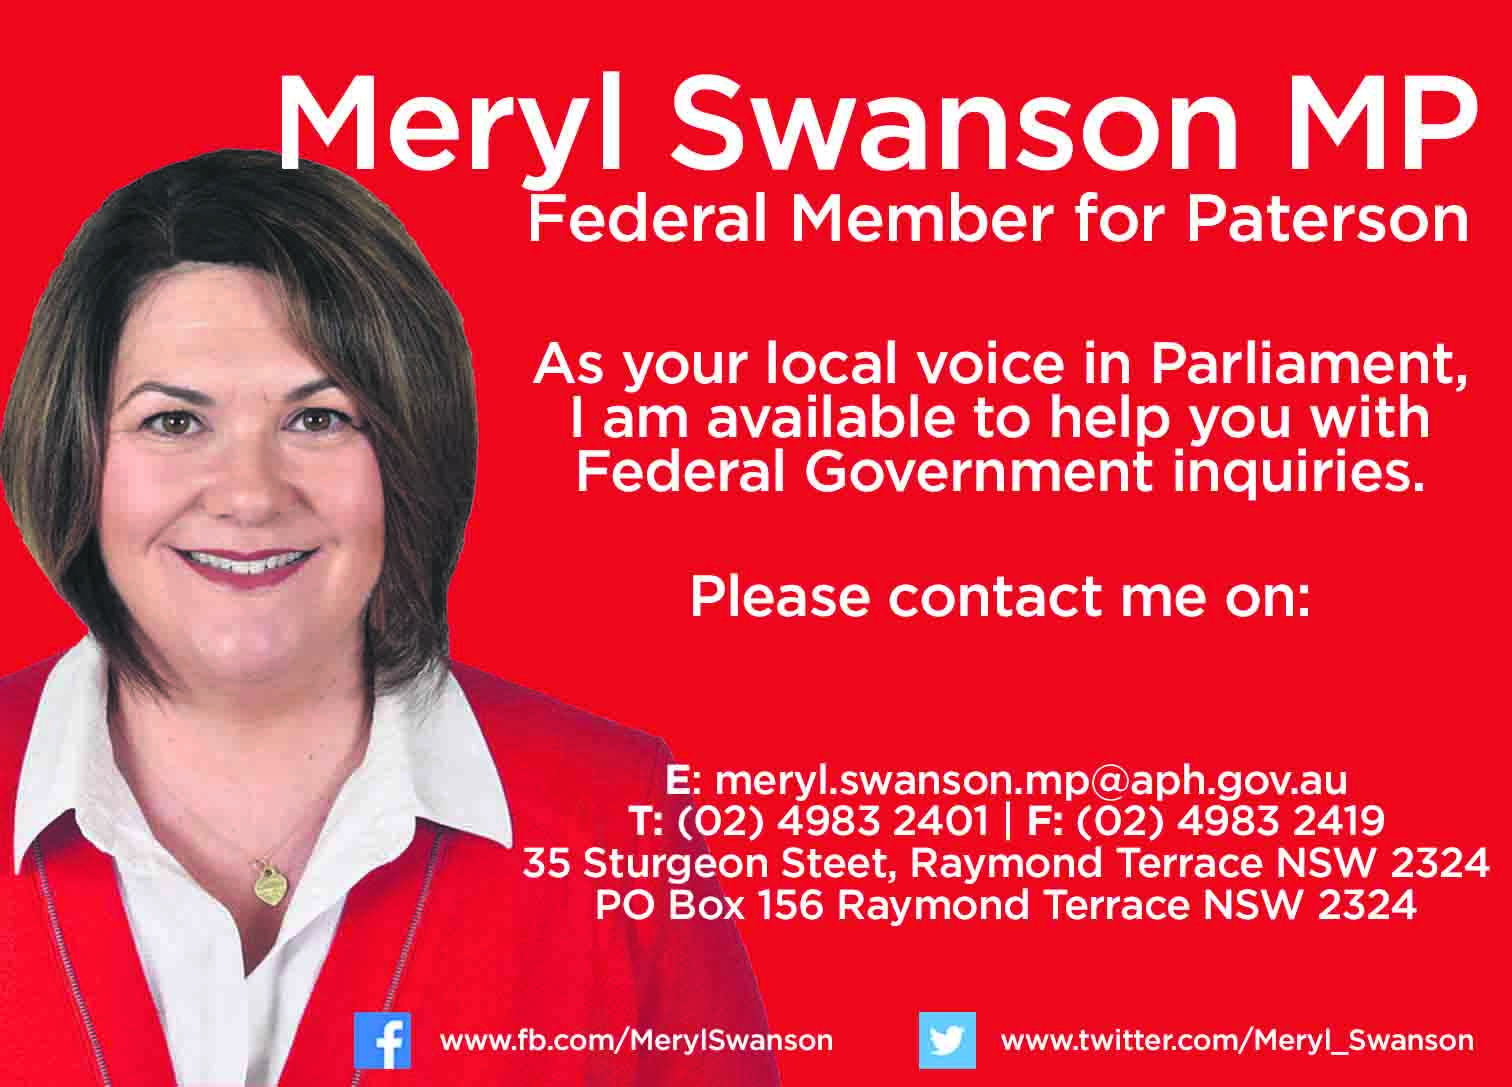 Meryl Swanson - Member for Paterson